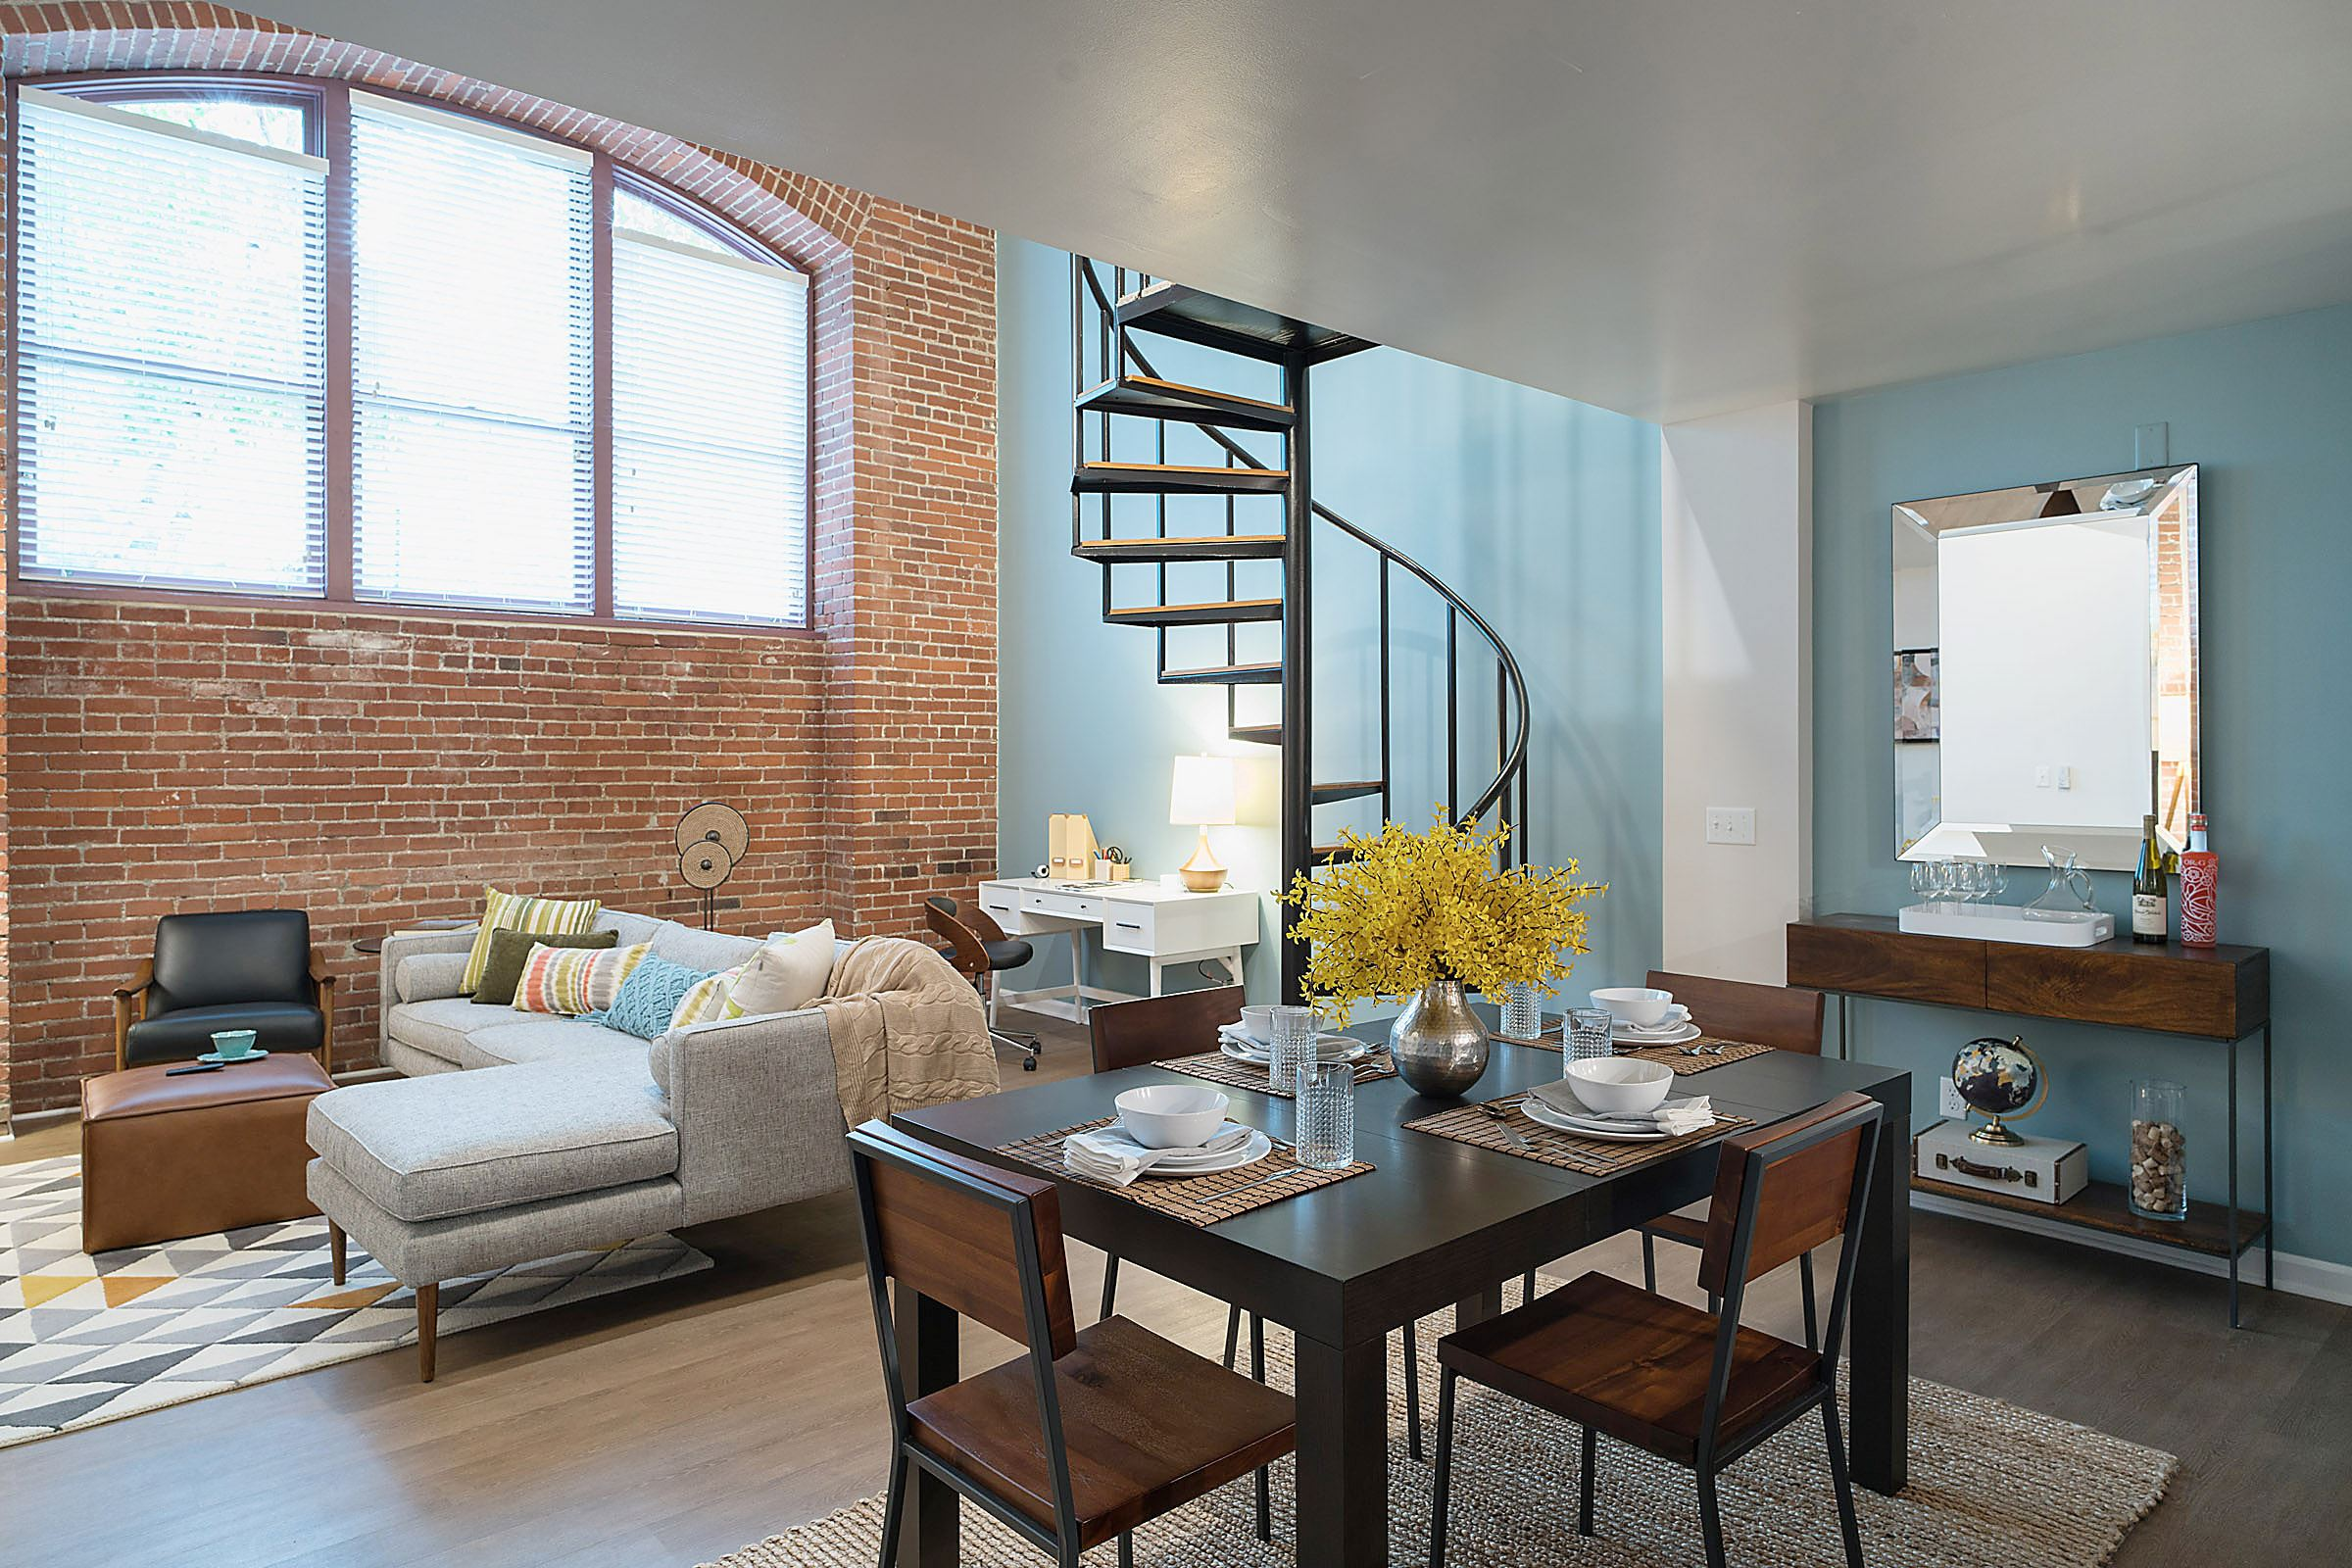 1 Bedroom Apartments Shadyside 28 Images Lofty Living In Shadyside Commons Open House